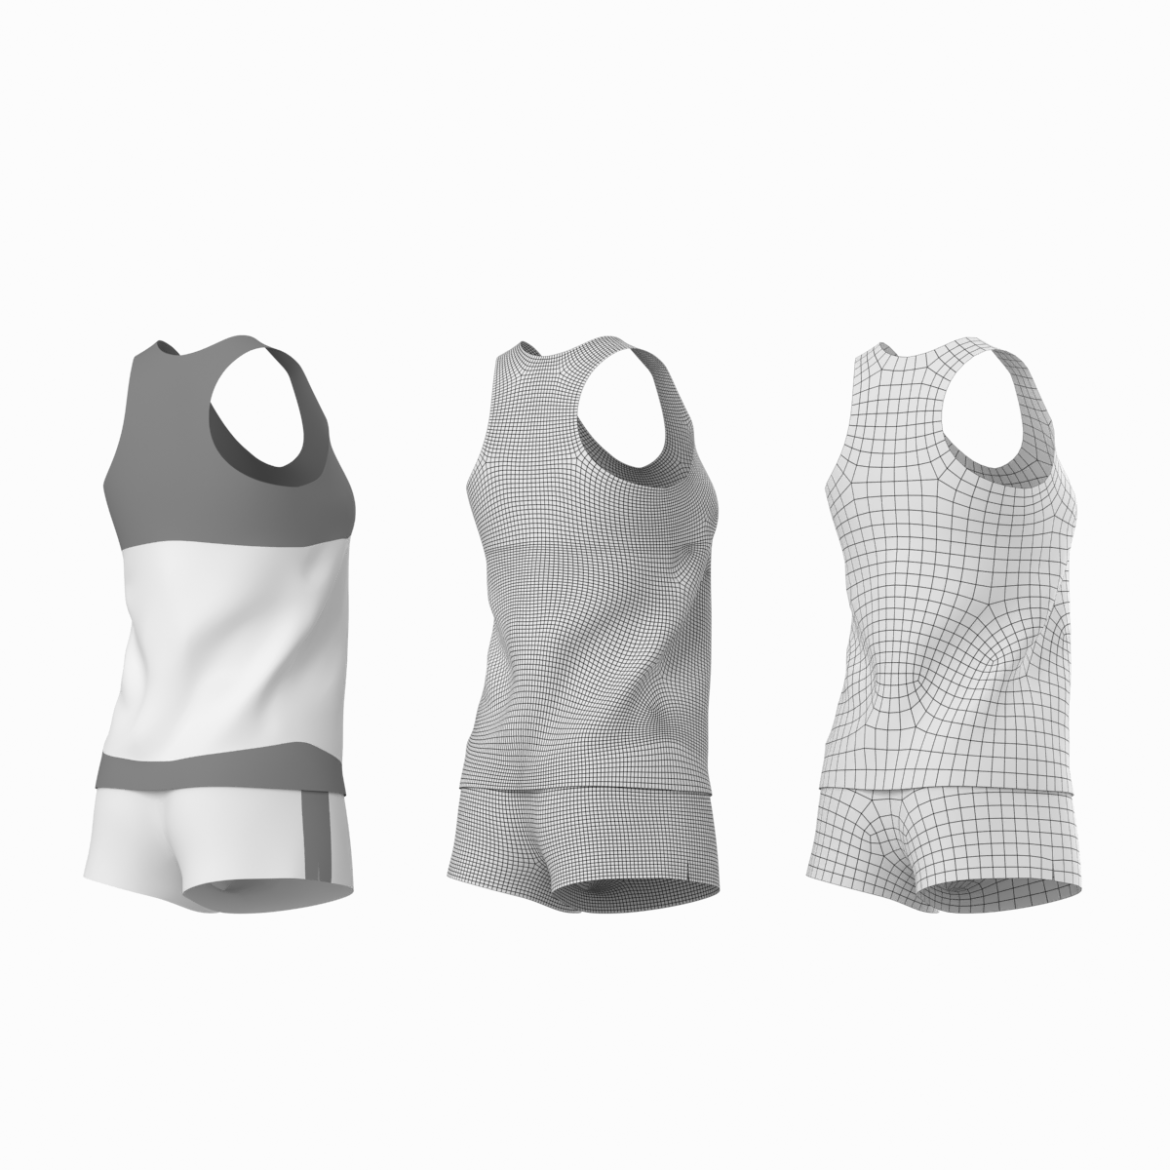 woman sportswear 03 base mesh design kit 3d model 3ds max fbx blend c4d dae ma mb  obj ztl 321872